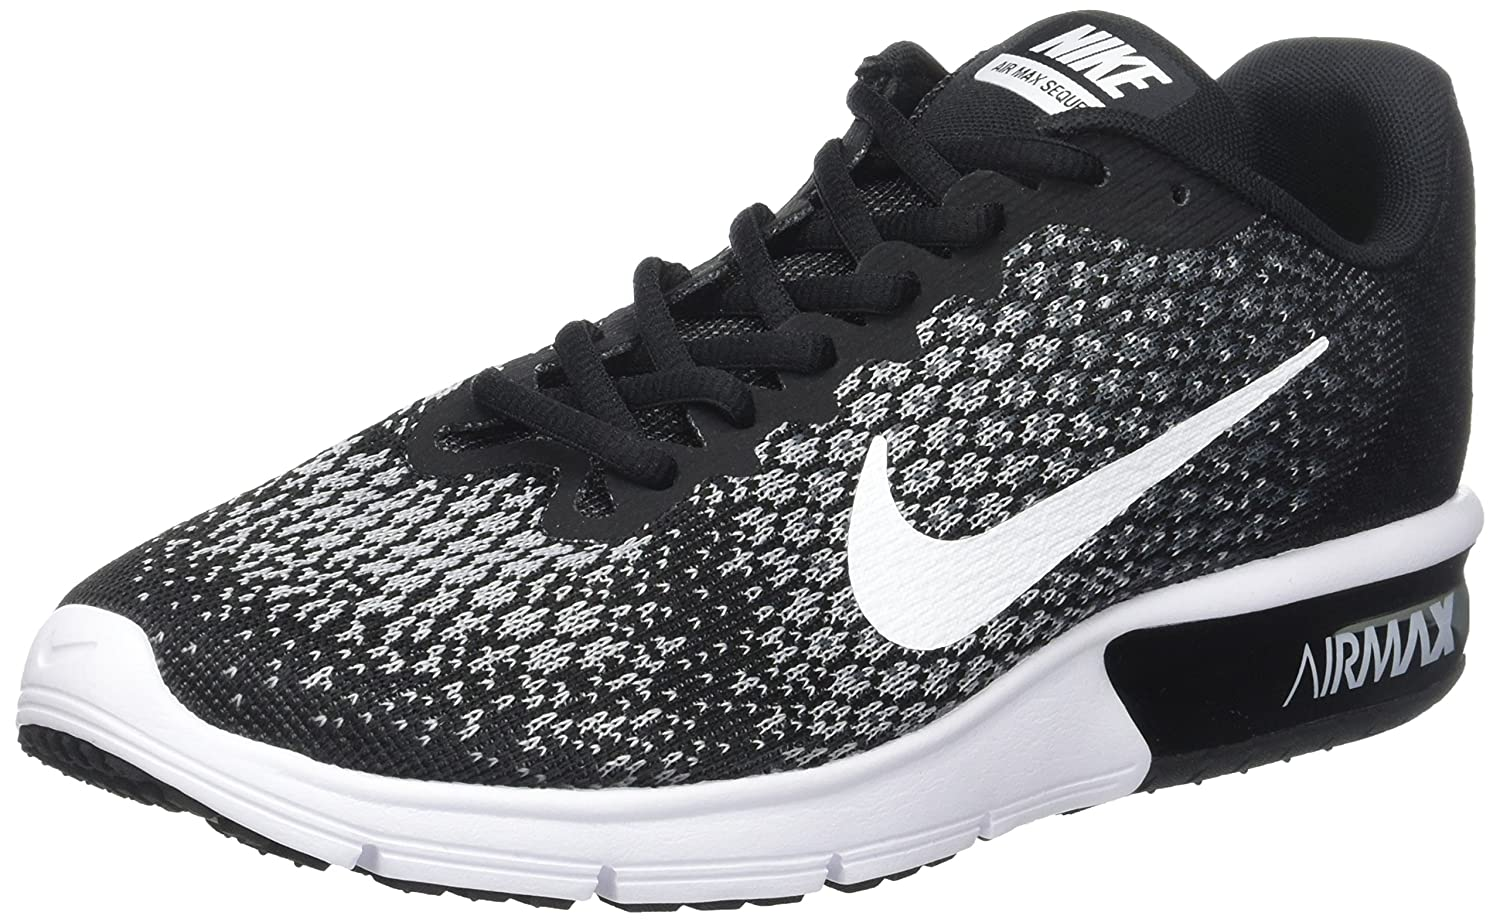 NIKE Men's Air Max Sequent 2 Running Shoe B01H4XEXSK 6.5 B(M) US|Black/White/Dark Grey/Wolf Grey